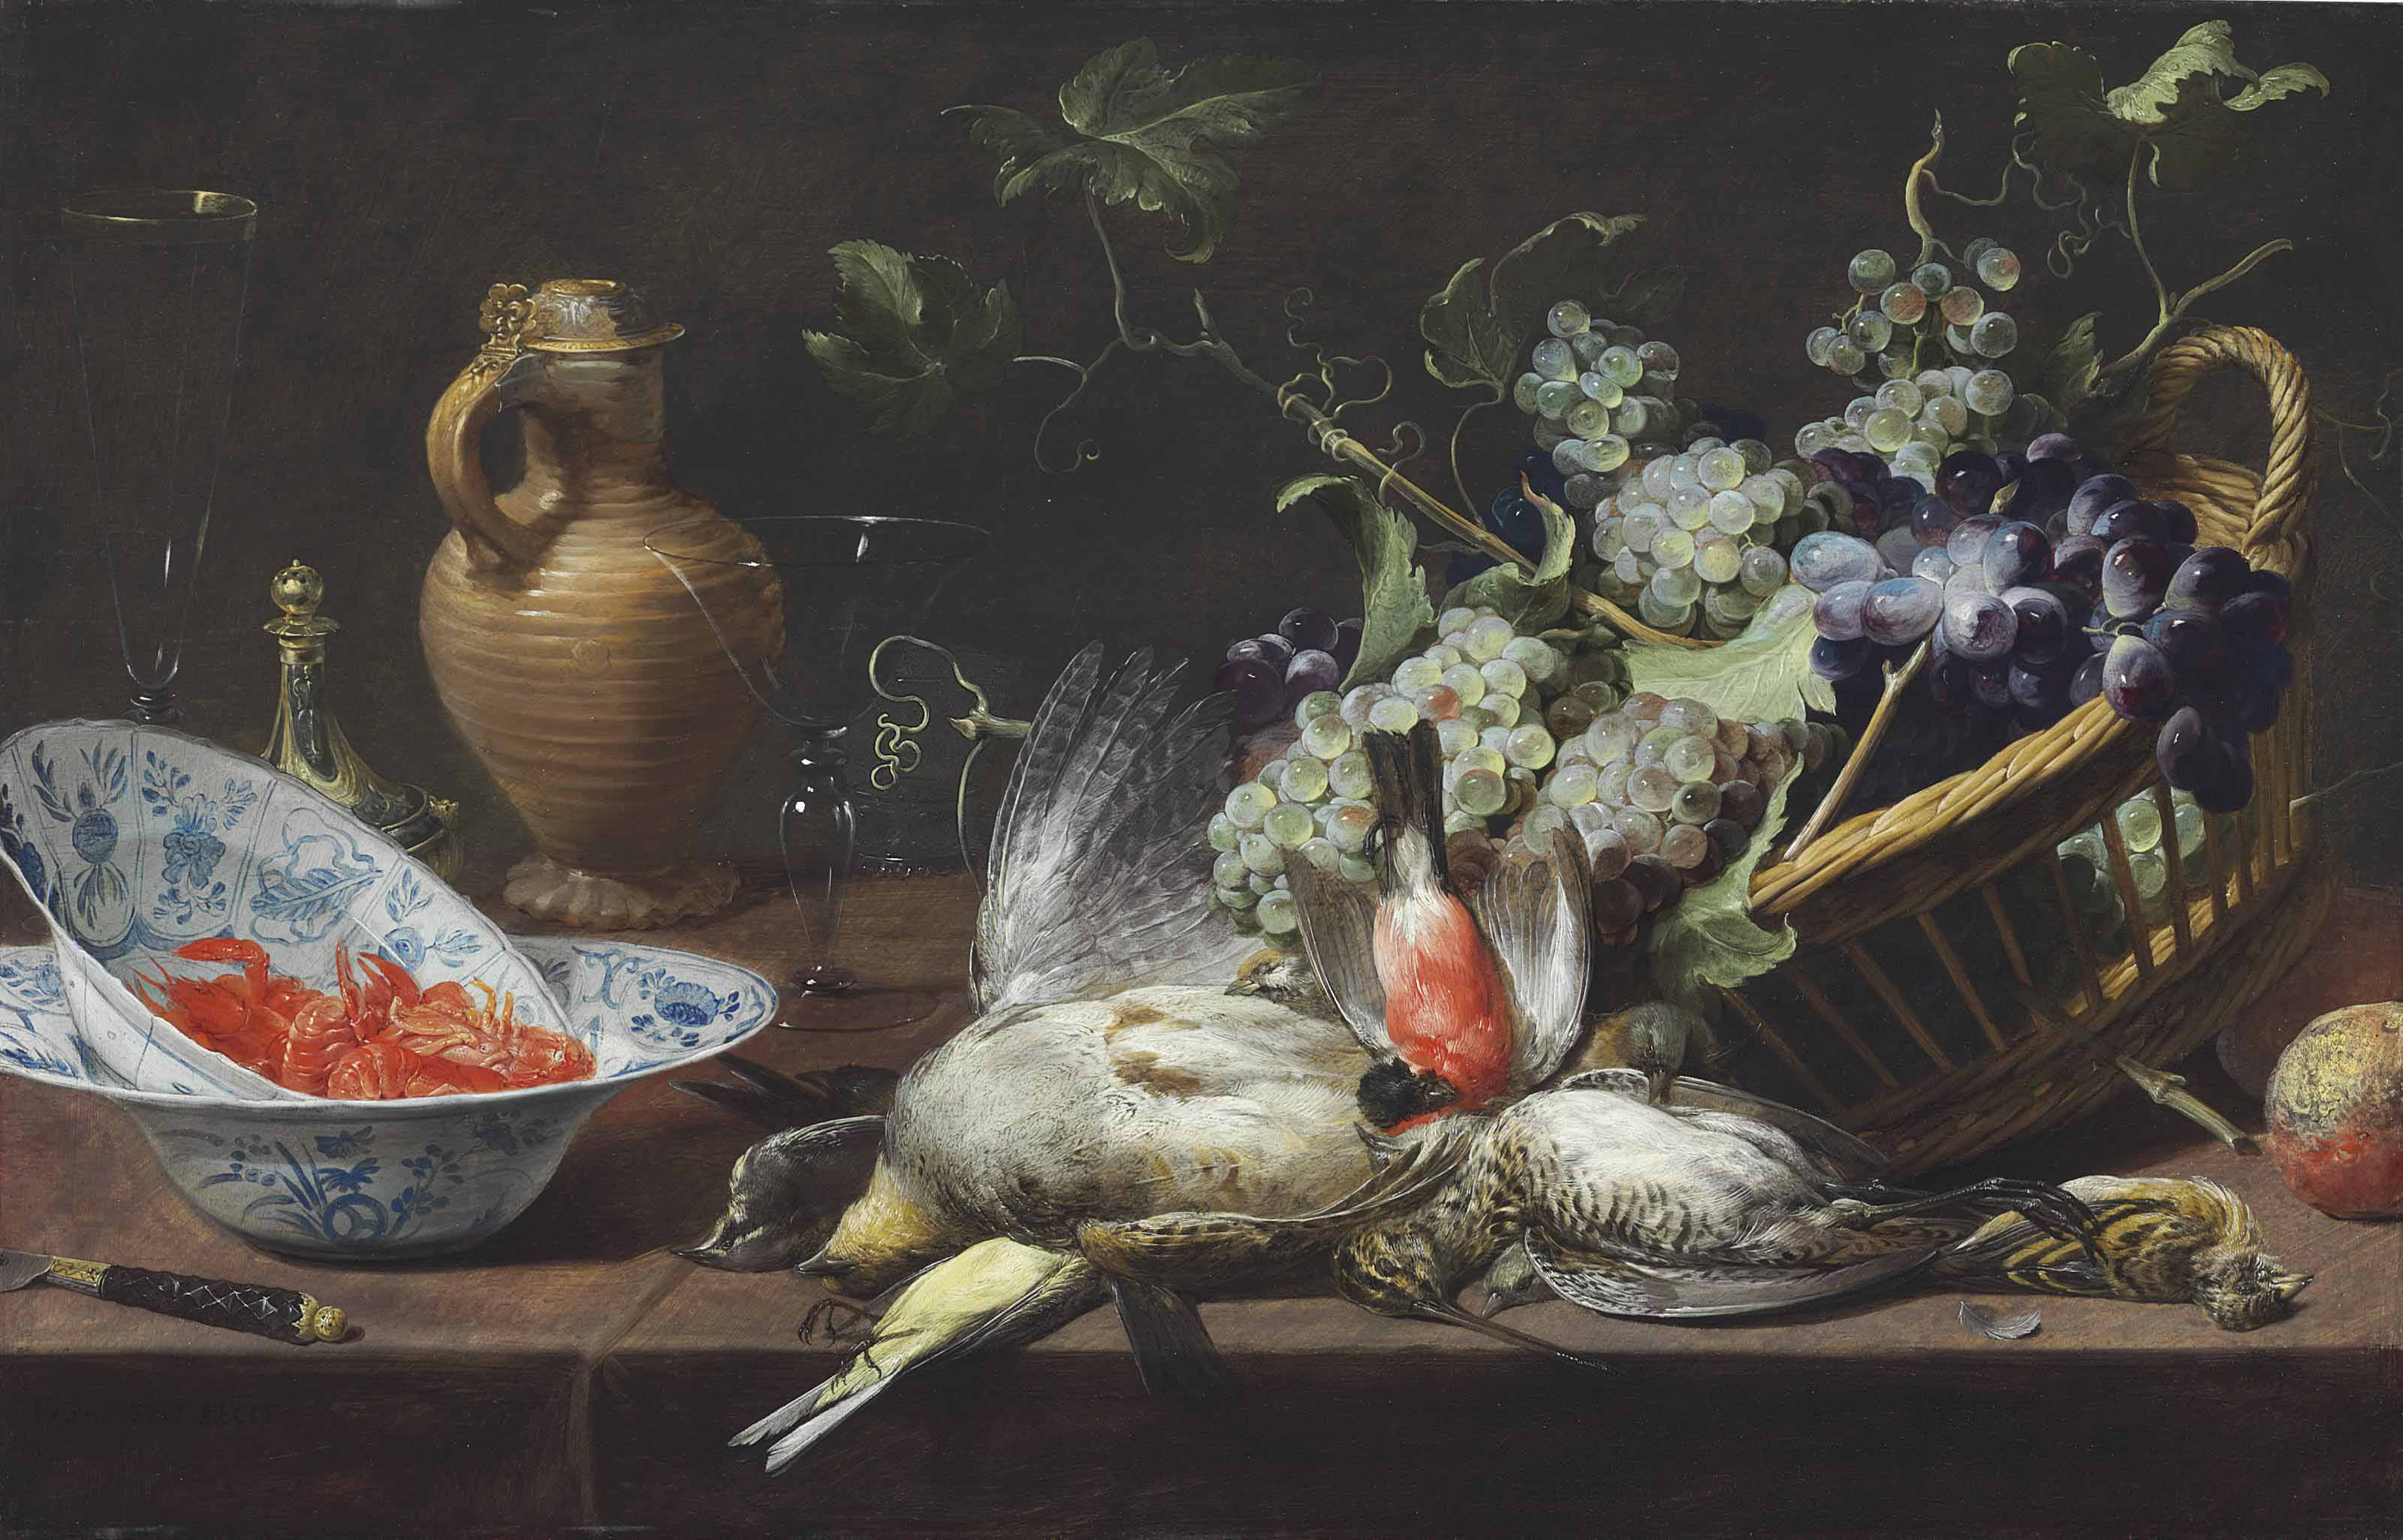 A partridge, snipe, sparrow, finch, and other birds with a basket of grapes and langoustines in Wan-li kraak porcelain bowls, a mounted stoneware jug, saltcellar, and glasses on a tabletop